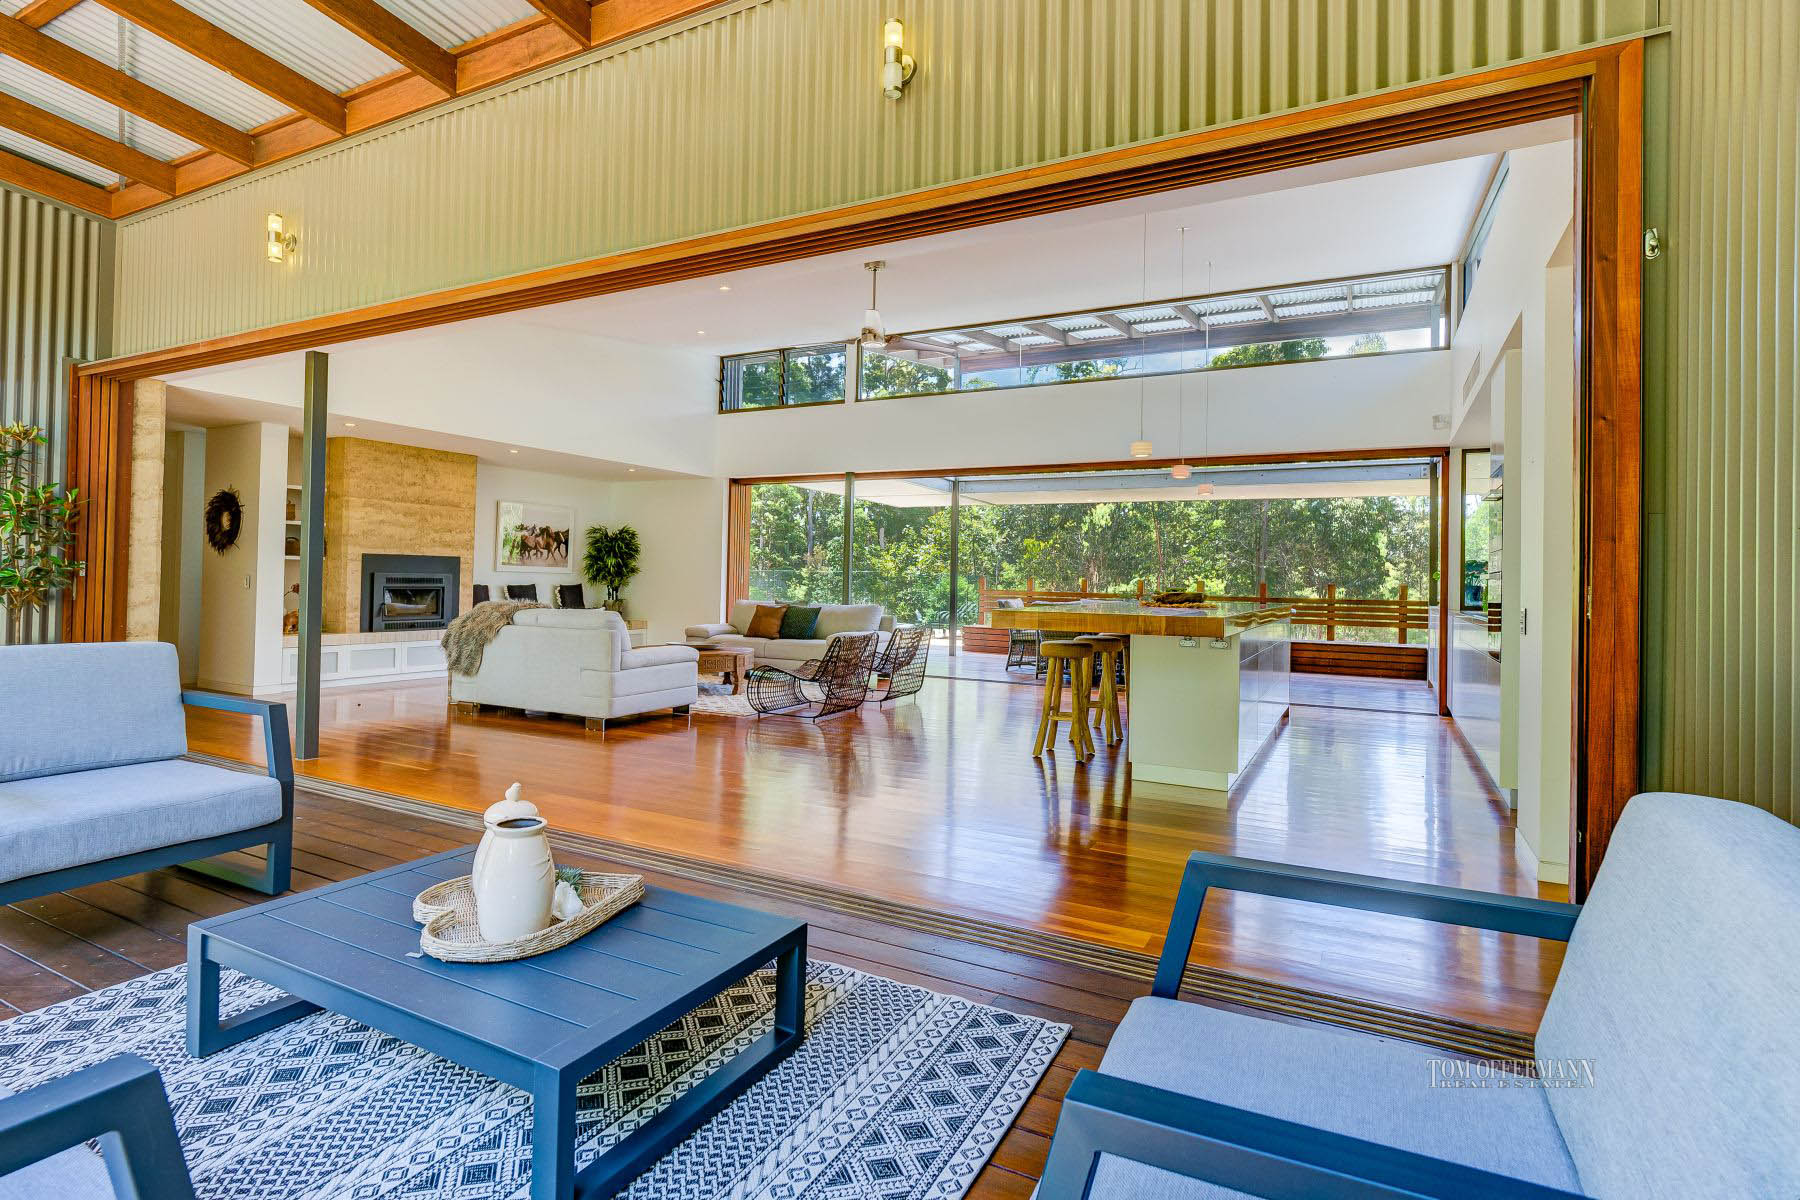 734 calanthe ave doonan qld 4562 house for sale domain - Maison architecte queensland tim ditchfield ...